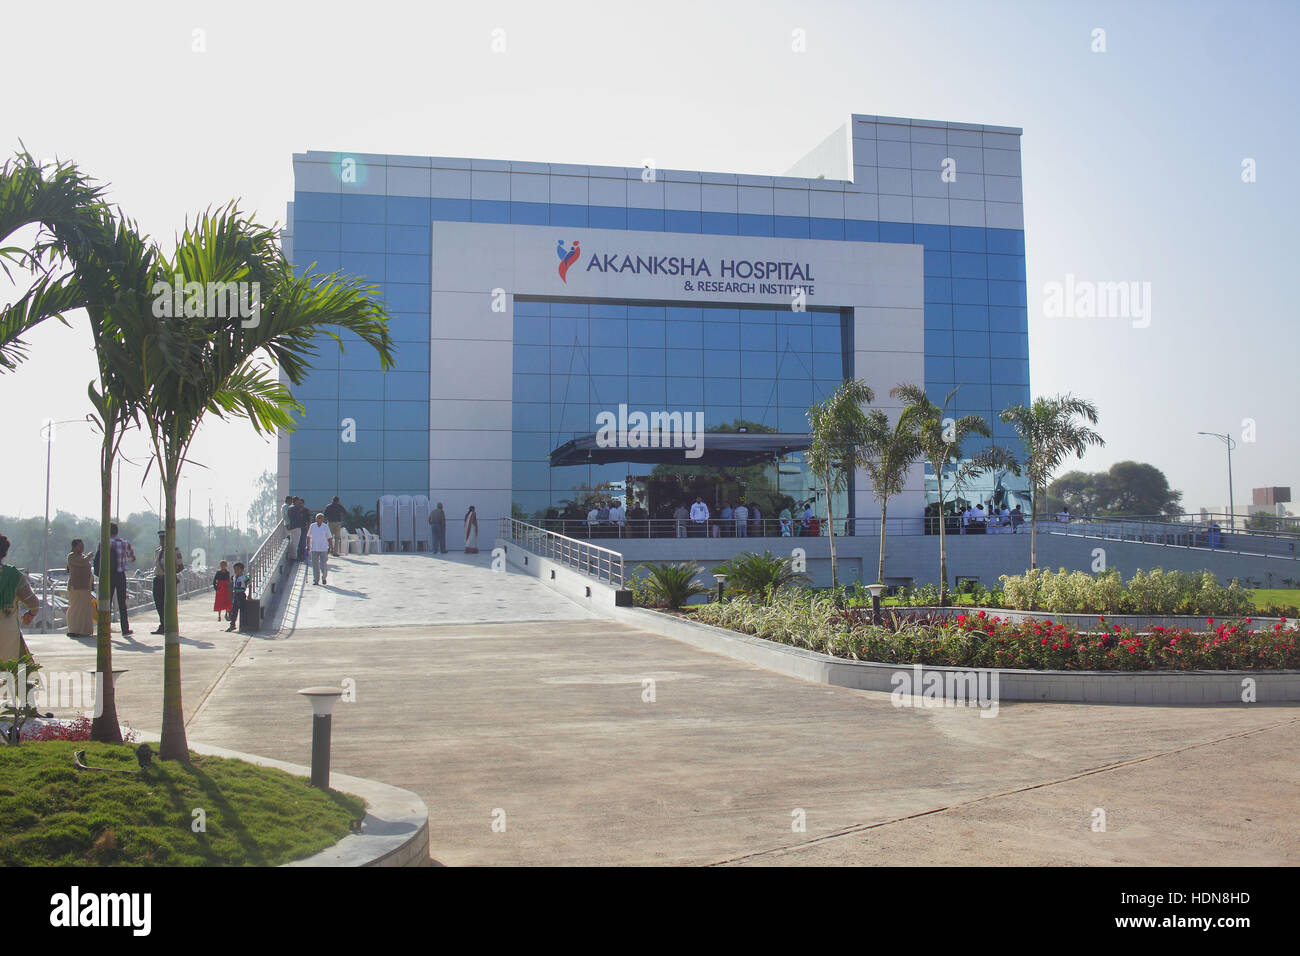 Commercial building design commercial building subhash - 13th Dec 2015 13 Dec 2015 Anand India Surrogacy Ivf Specialist Dr Nayana Patel S Hospital At Anand Subhash Sharma Zuma Wire Alamy Live News